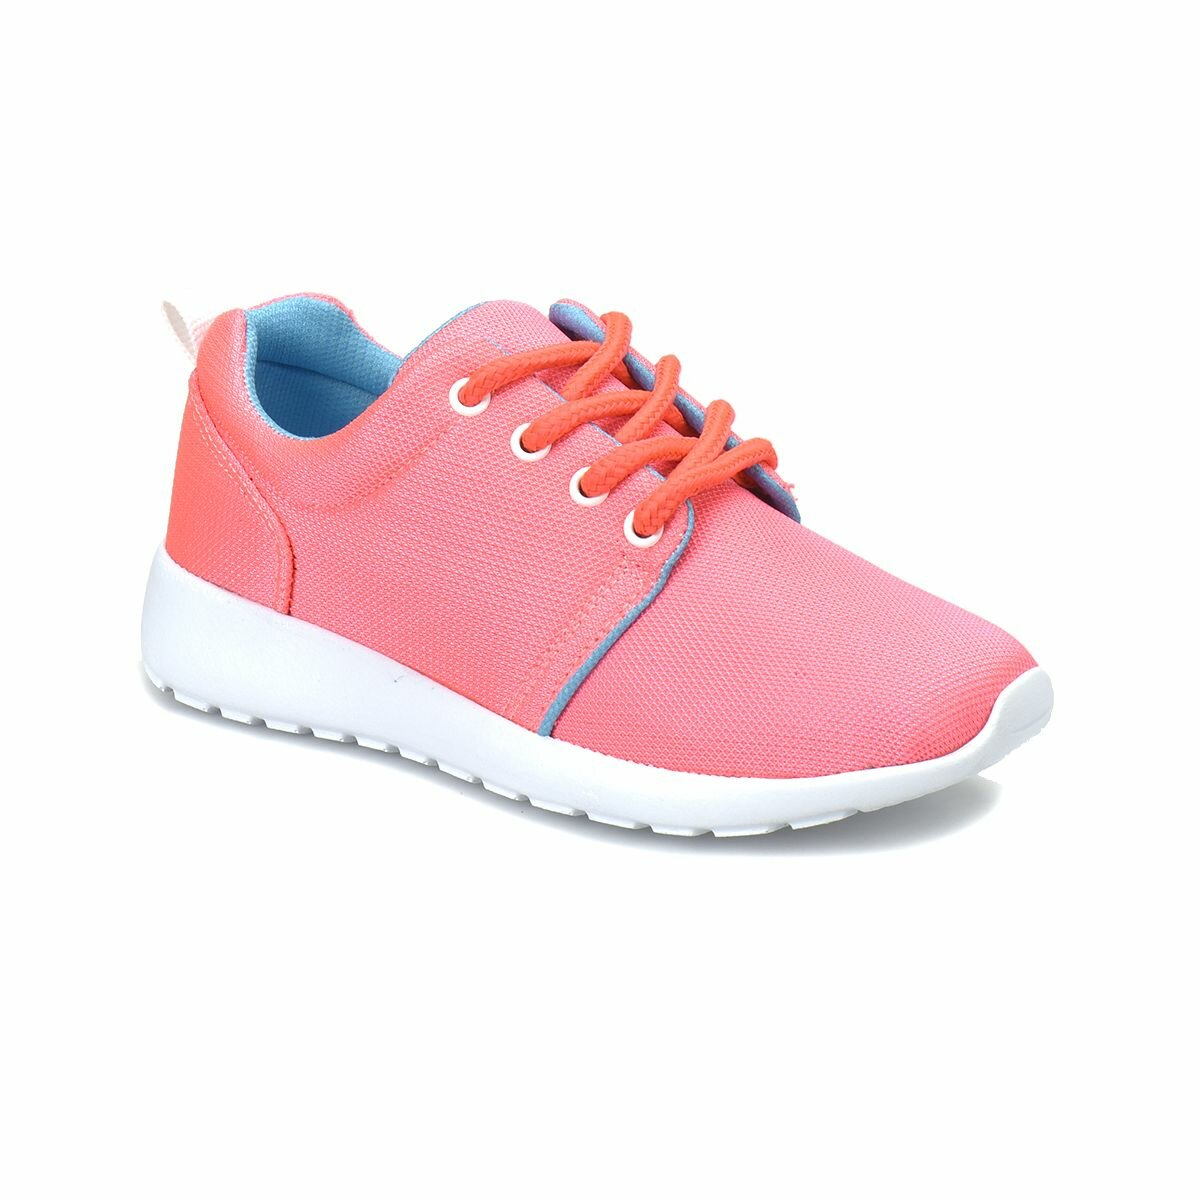 FLO ROSHY Pomegranate Flower Female Child Sneaker Shoes I-Cool